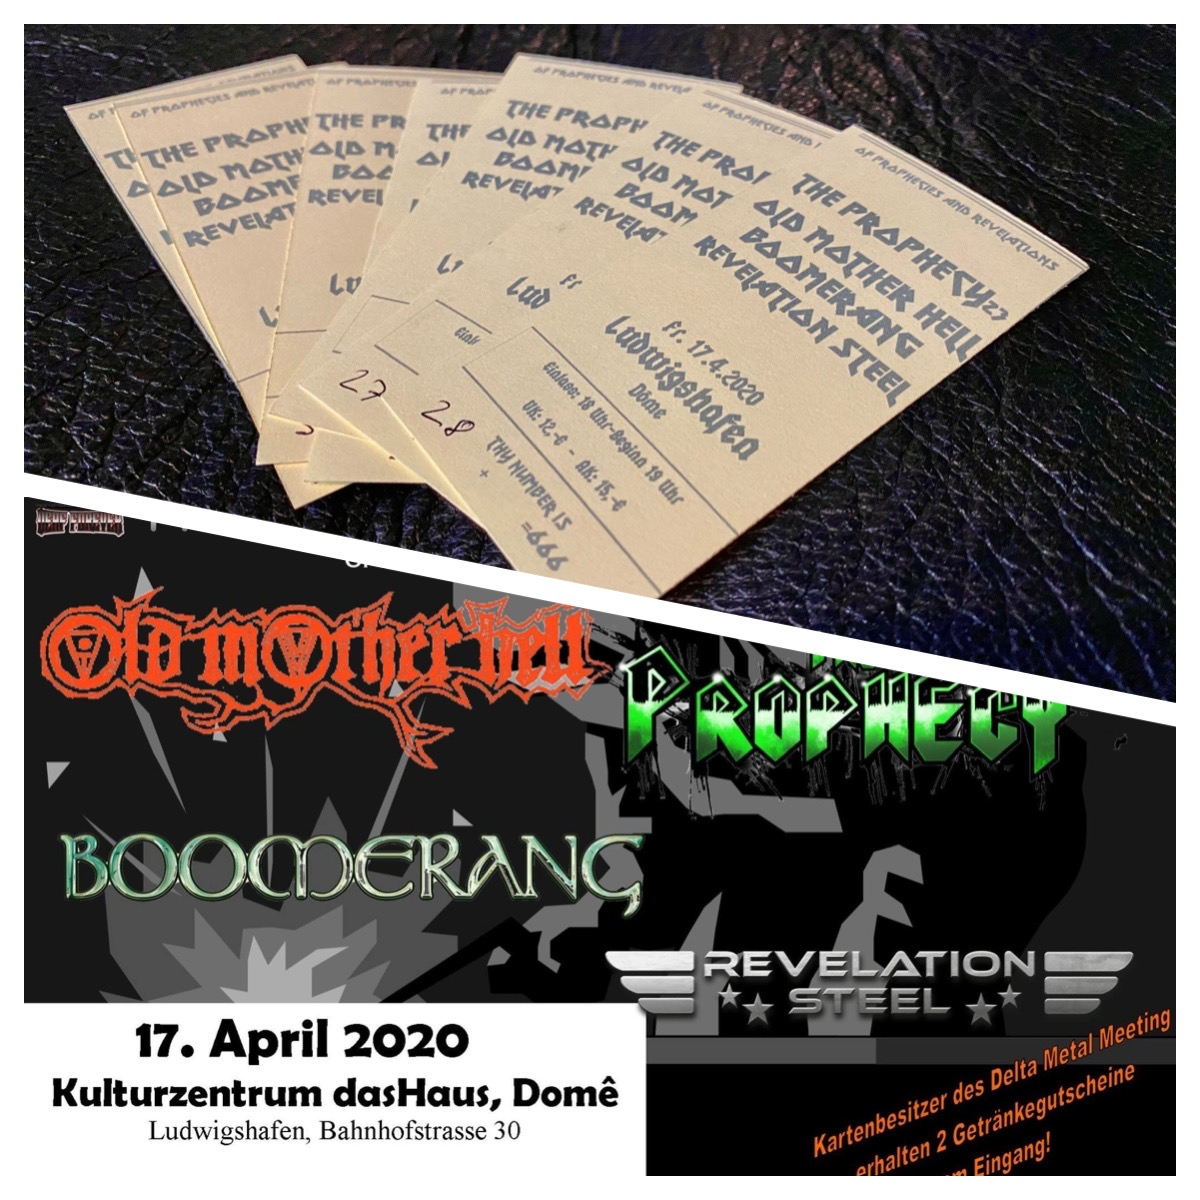 Tickets Of Prophecies And Revelations Ludwigshafen